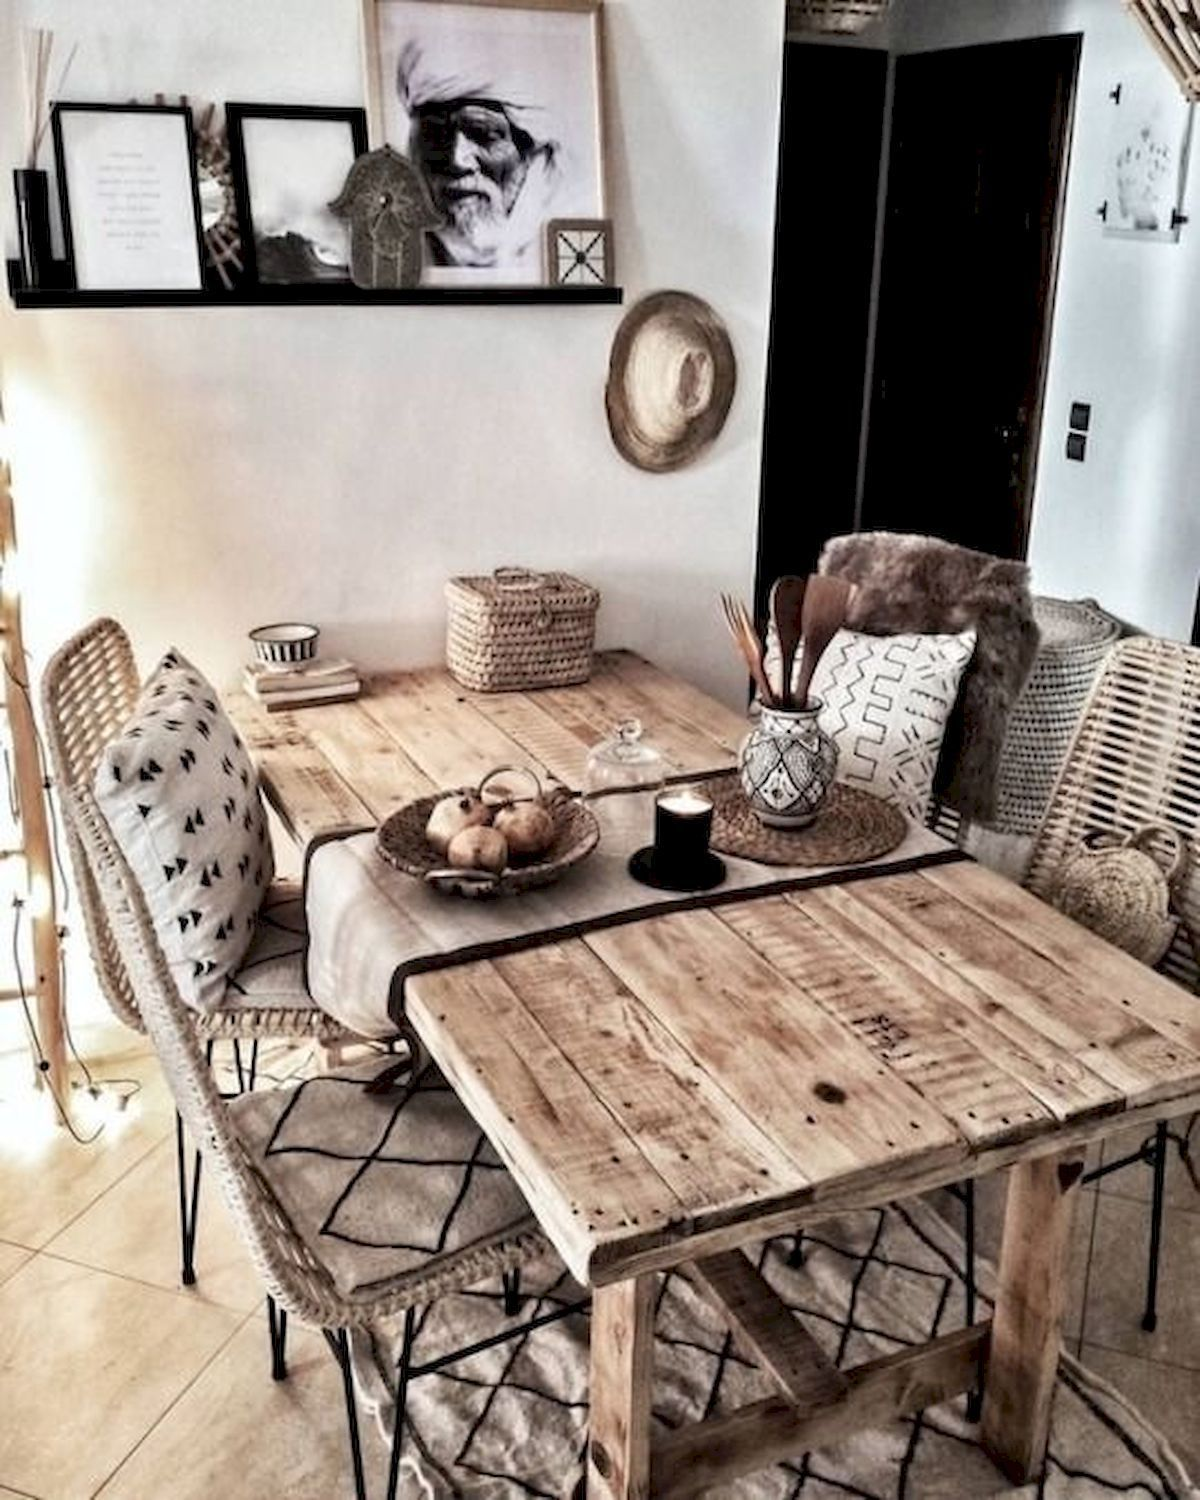 18 Adorable Dining Room Wall Art Ideas And Decor - 18DECOR in 18